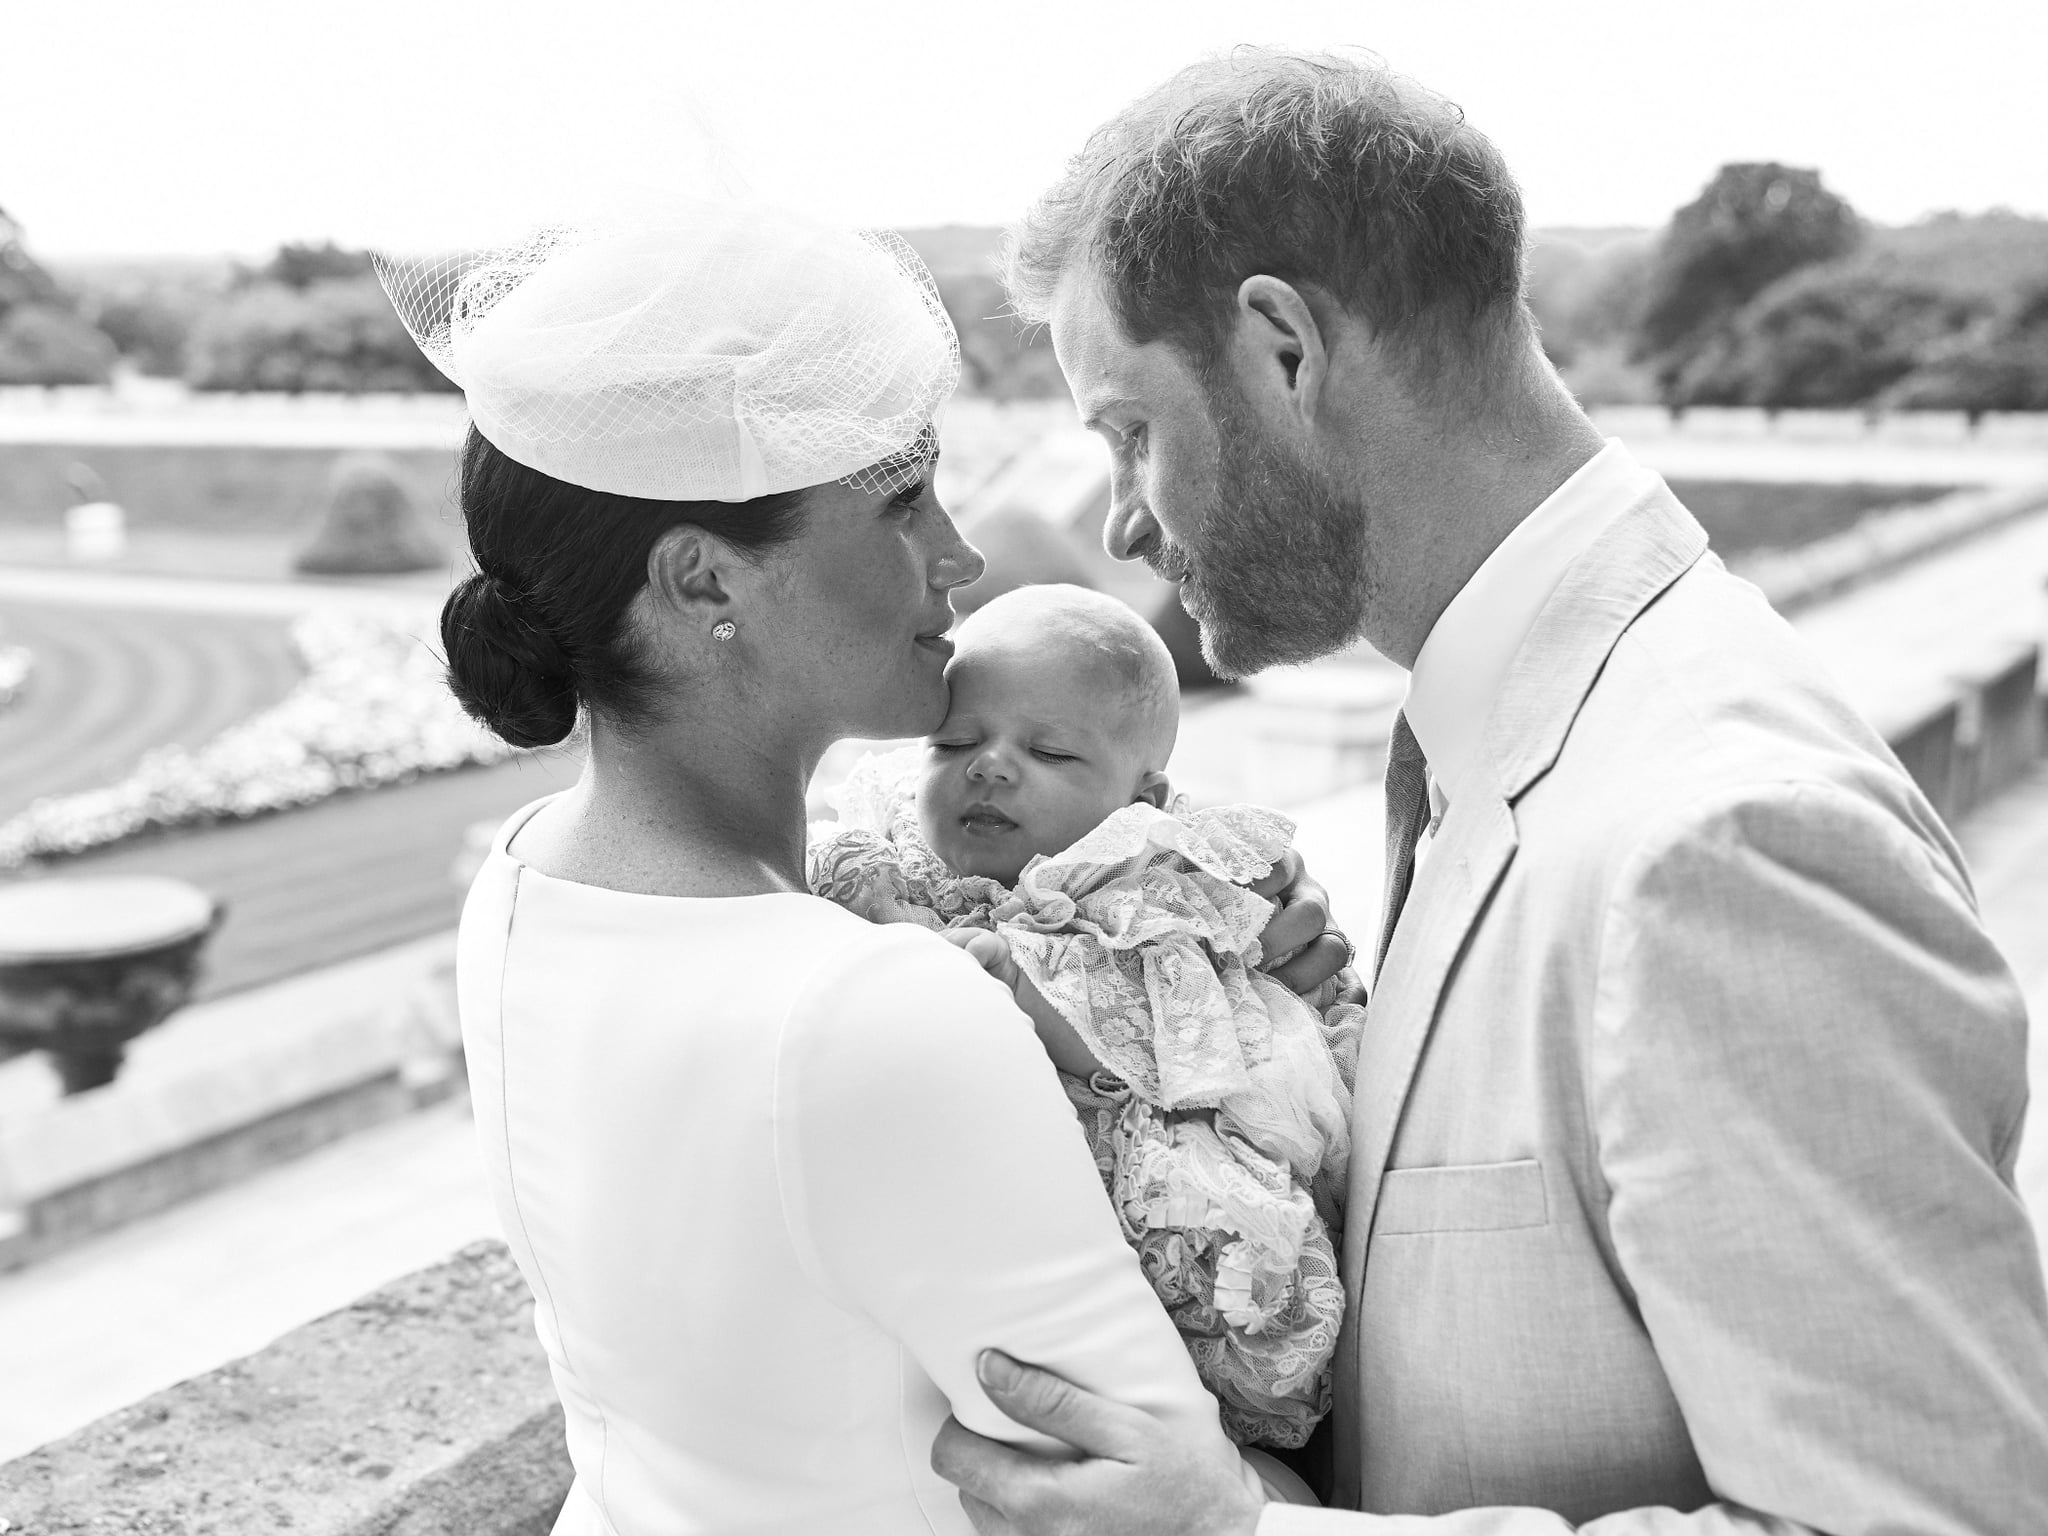 This official handout Christening photograph released by the Duke and Duchess of Sussex shows Britain's Prince Harry, Duke of Sussex (R), and his wife Meghan, Duchess of Sussex holding their baby son, Archie Harrison Mountbatten-Windsor at Windsor Castle with the Rose Garden in the background, west of London on July 6, 2019. - Prince Harry and his wife Meghan had their baby son Archie christened on Saturday at a private ceremony. (Photo by Chris ALLERTON / SUSSEXROYAL / AFP) / XGTY / RESTRICTED TO EDITORIAL USE - MANDATORY CREDIT